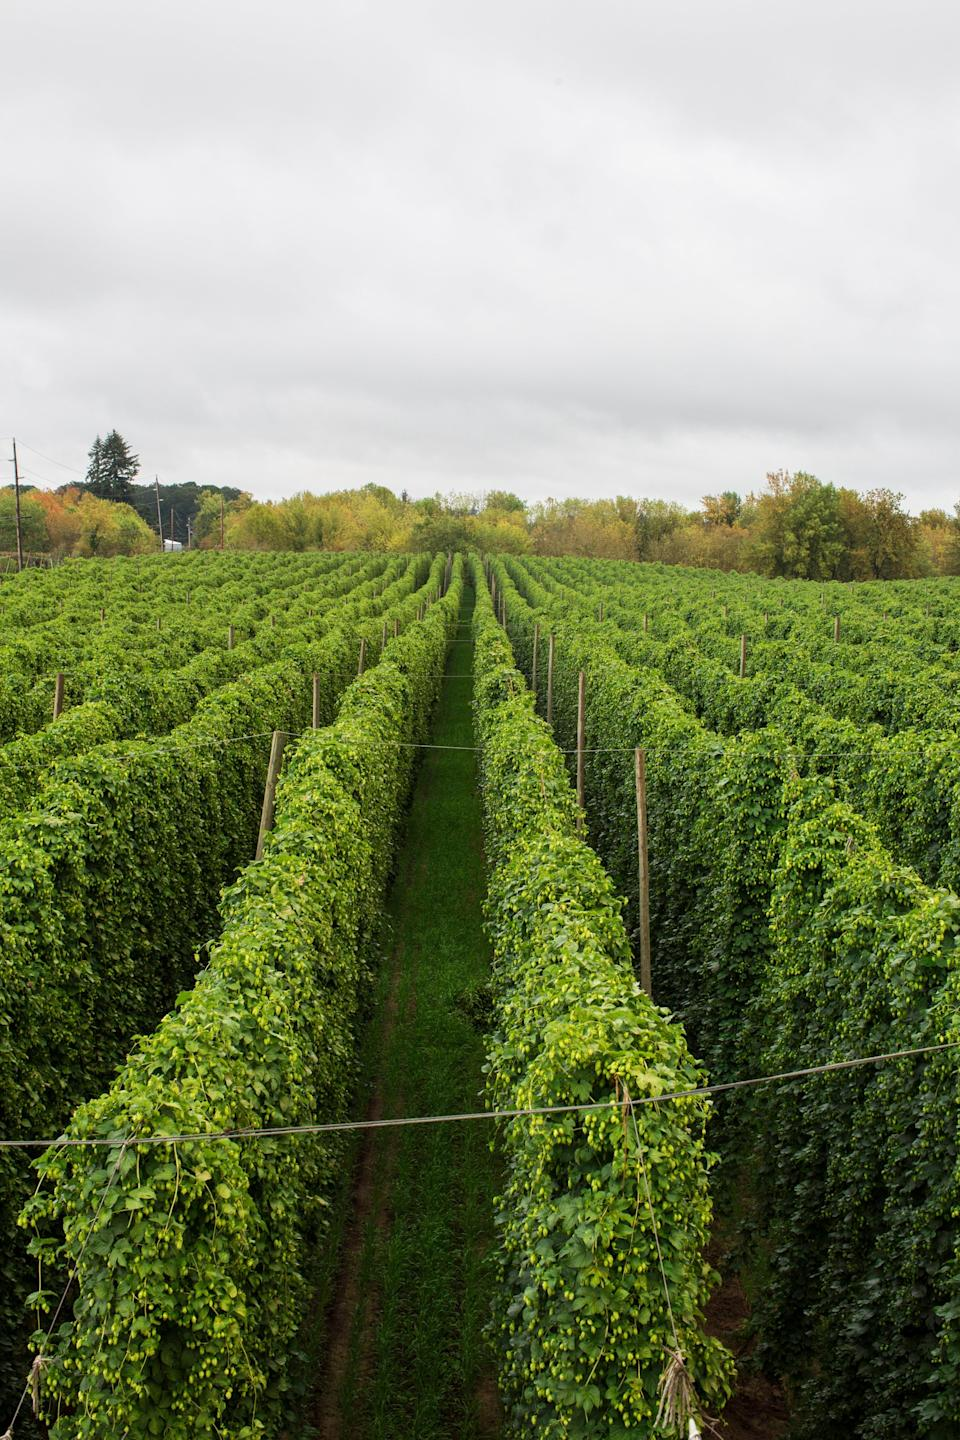 Crosby Hops of Woodburn, Oregon, is donating any profits from hops sold to make Rock On lager to Sweet Relief Musicians Fund, a charity founded in 1993 to help musicians in need.